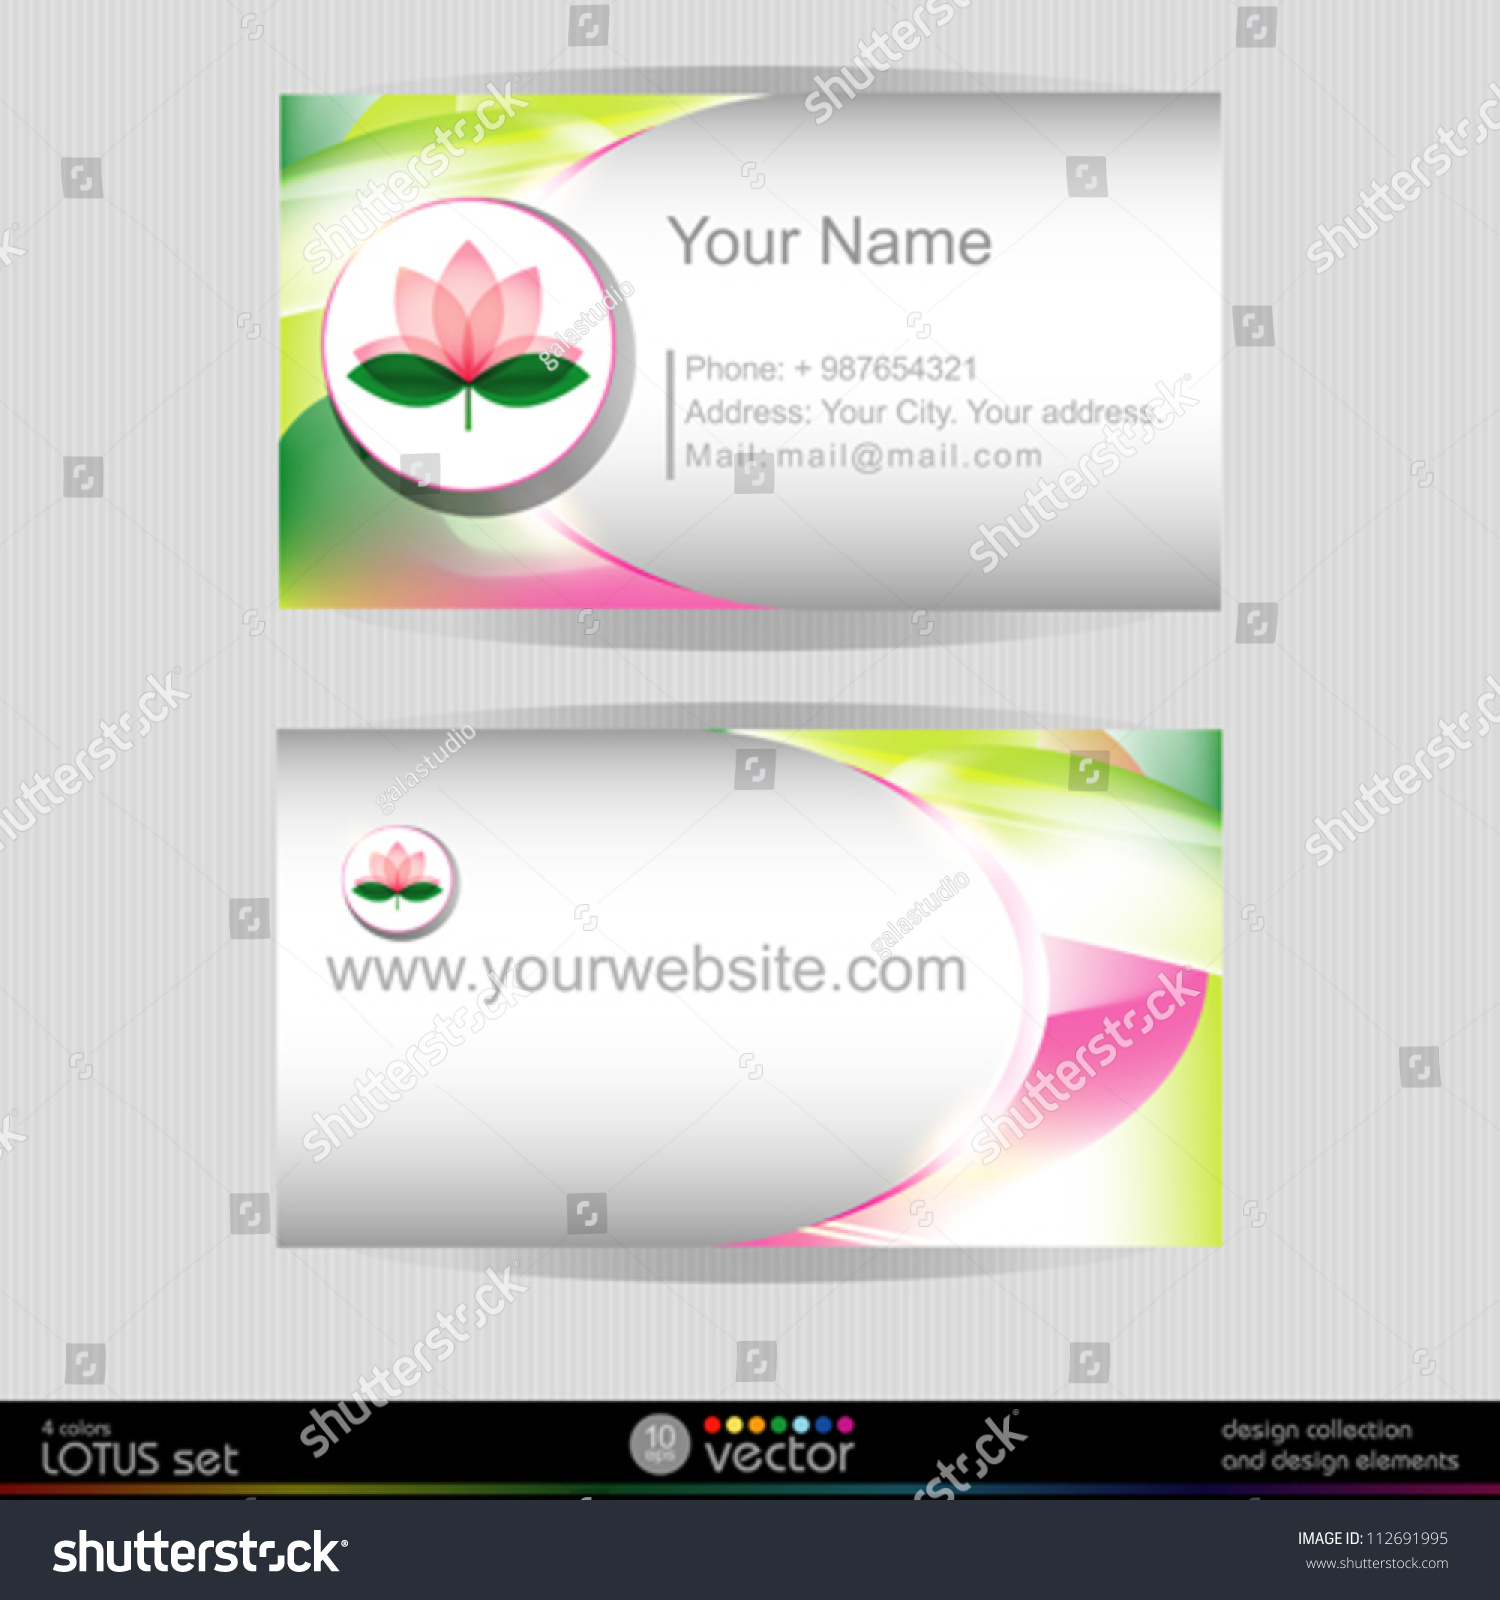 lotus blossom vector business card template stock vector